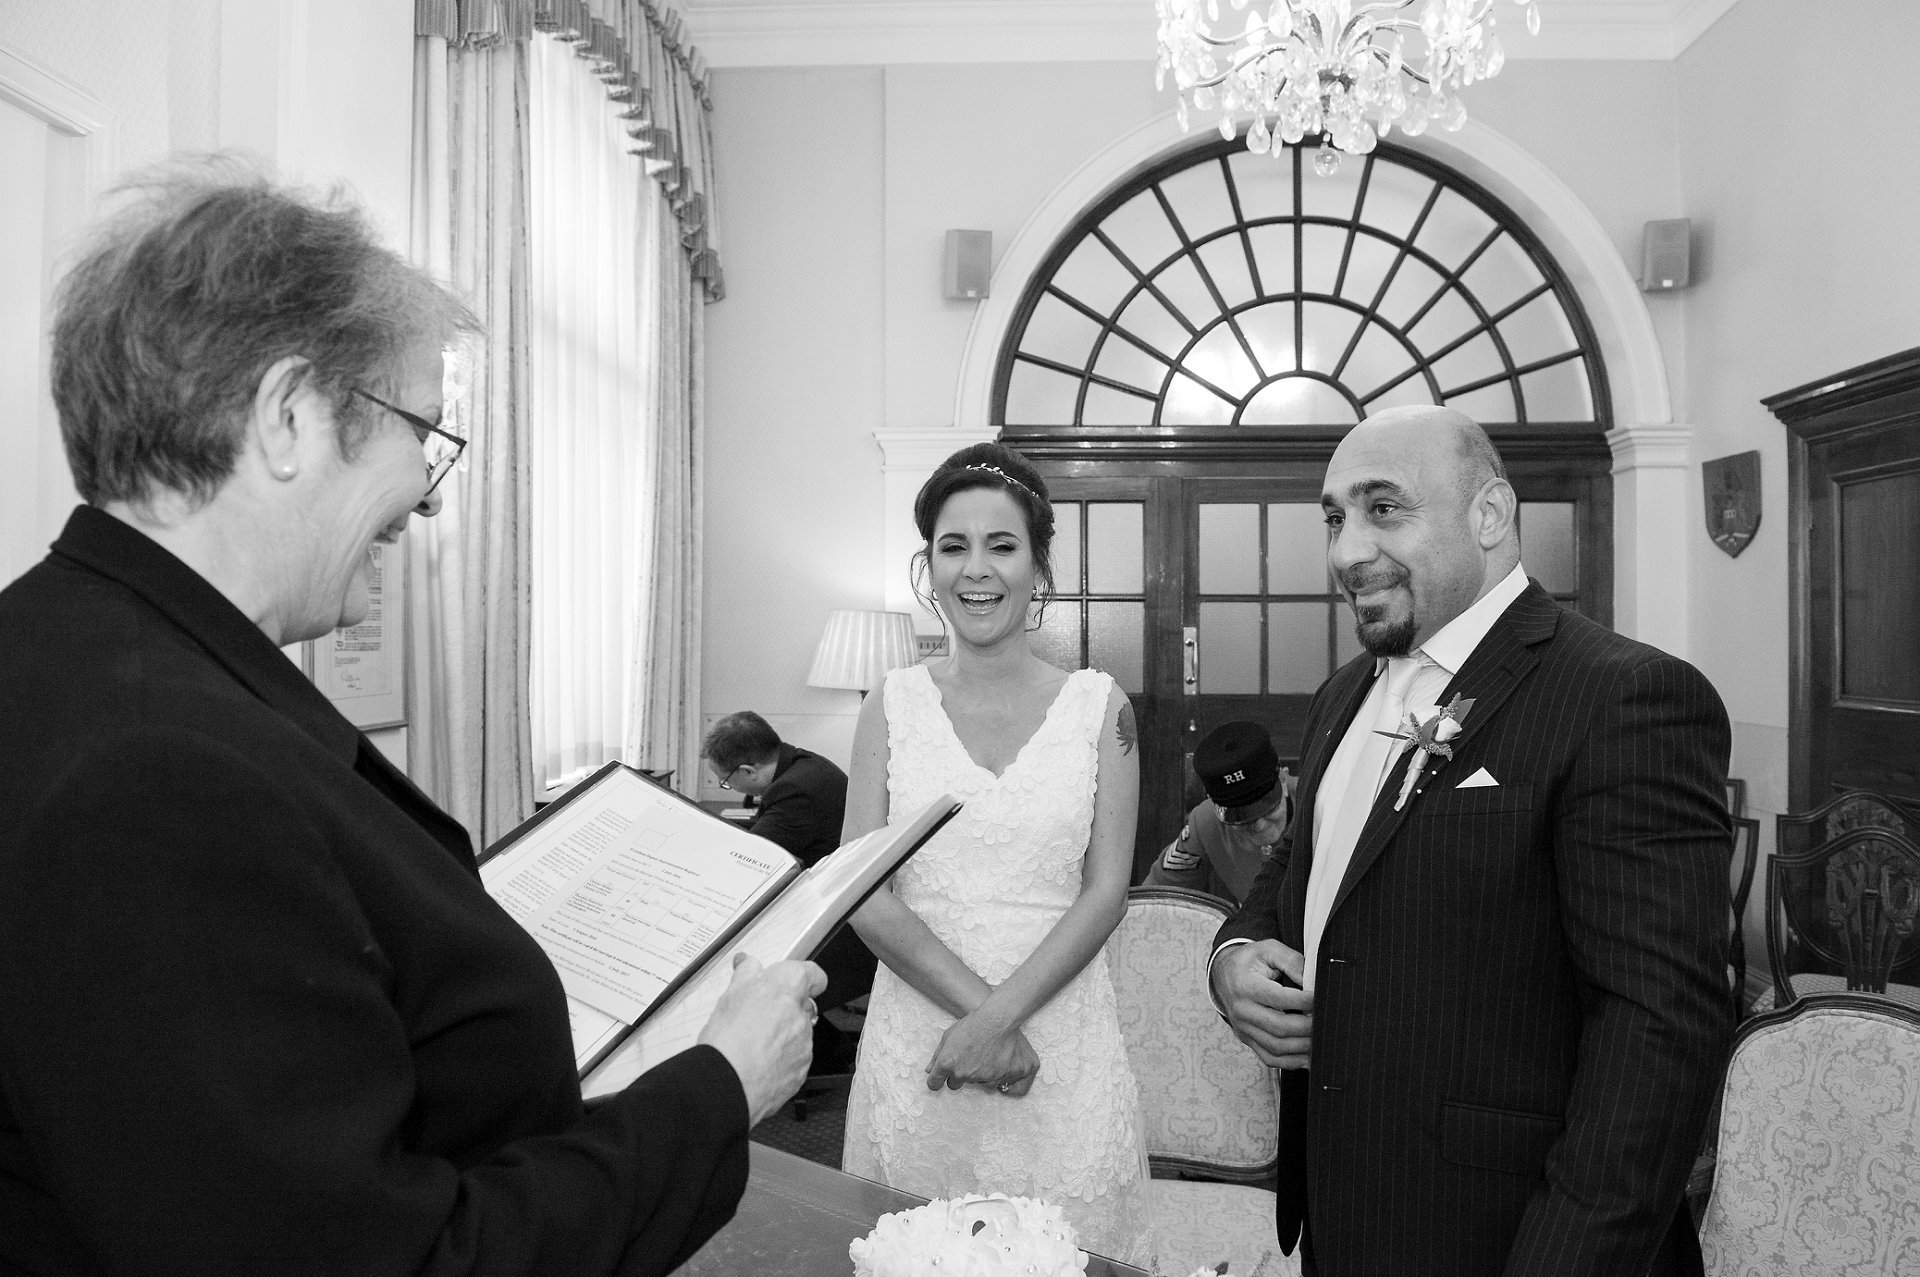 Kensington & Chelsea Registrar smiling at bride and groom during their wedding ceremony in Chelsea Old Town Hall